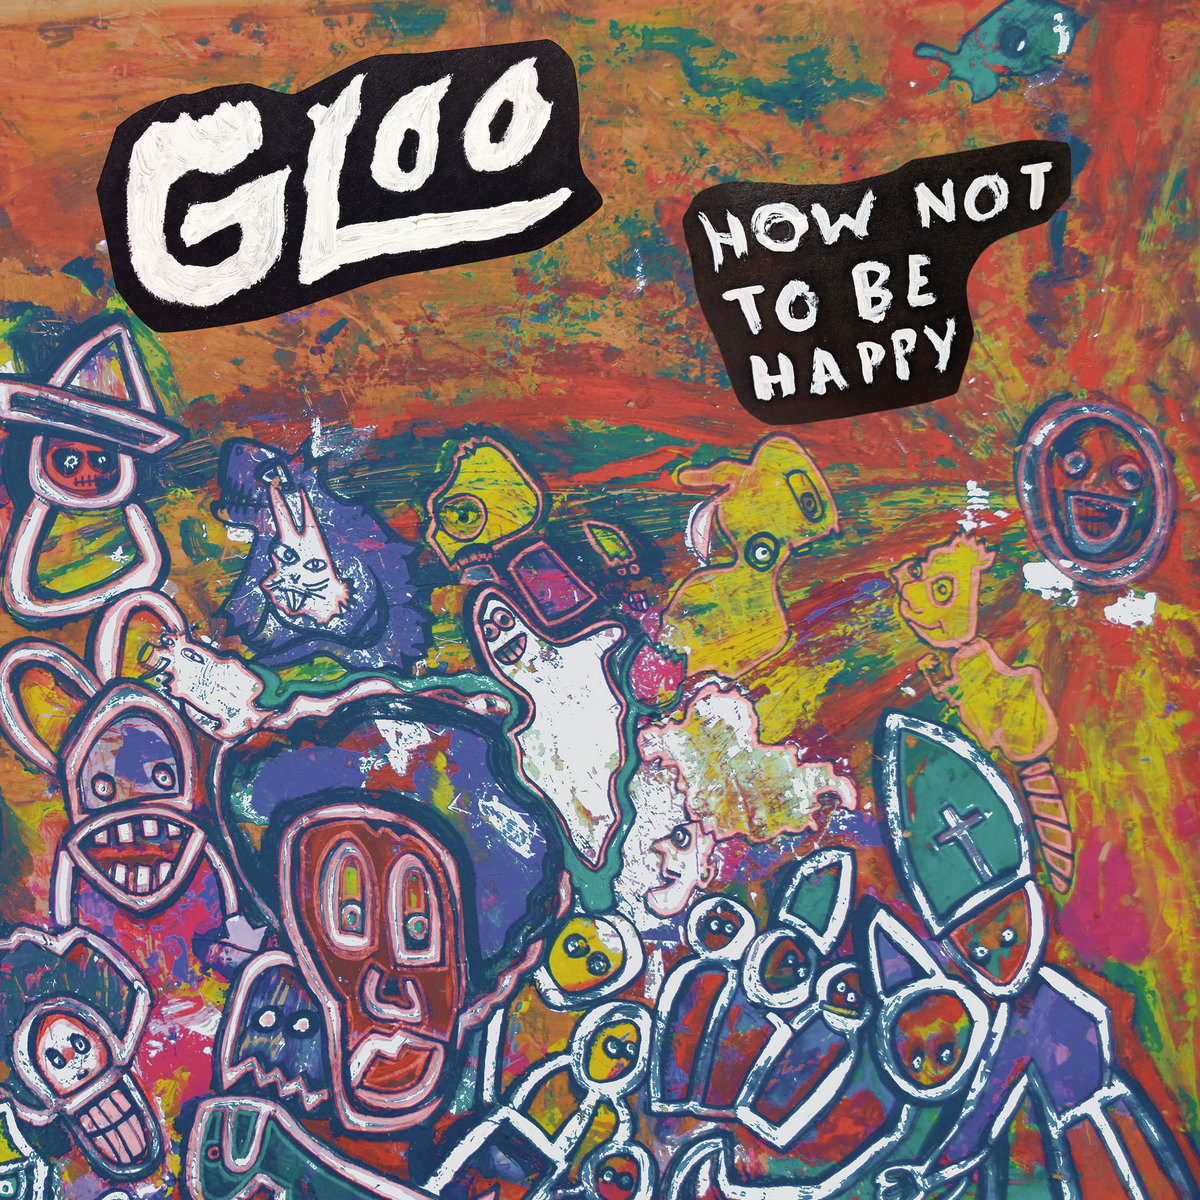 GLOO - How Not To Be Happy